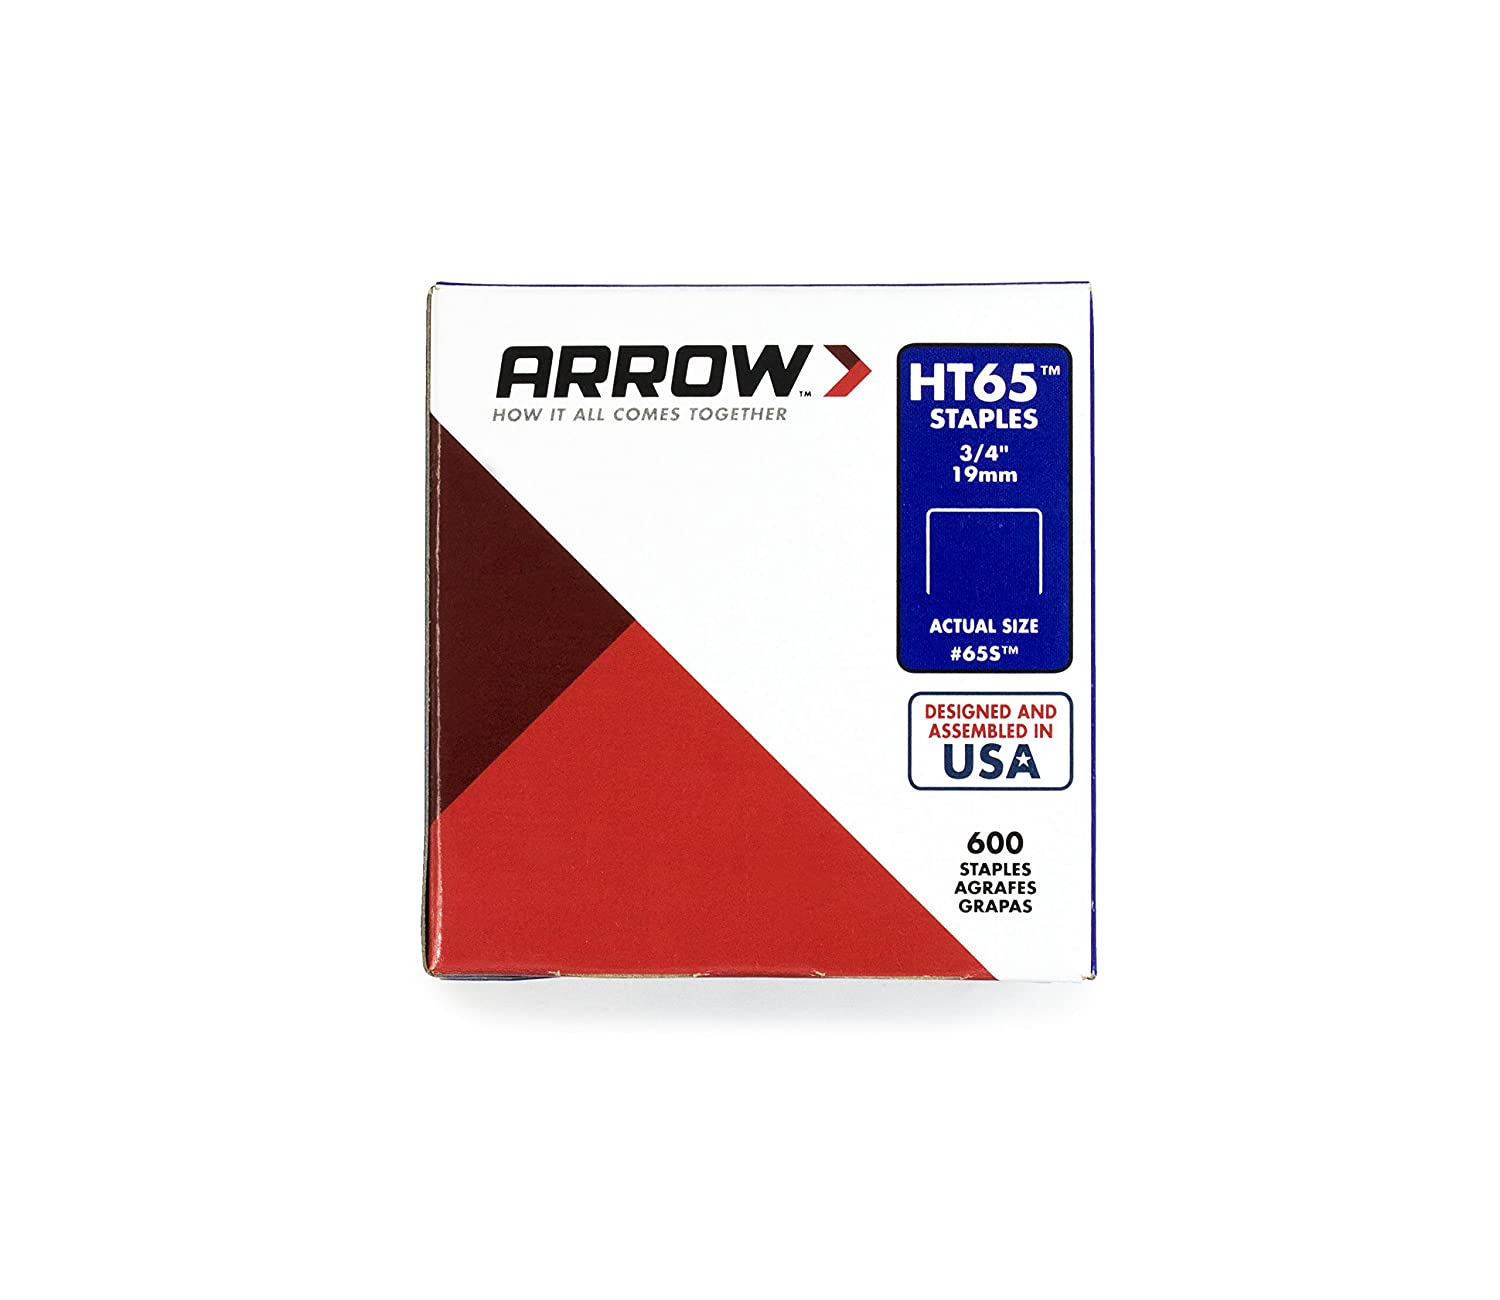 Arrow Staples Ht65s 2500 3/4in Hand Tools Soldering Riveting and Tacking Staples To Suit Arrow HT65